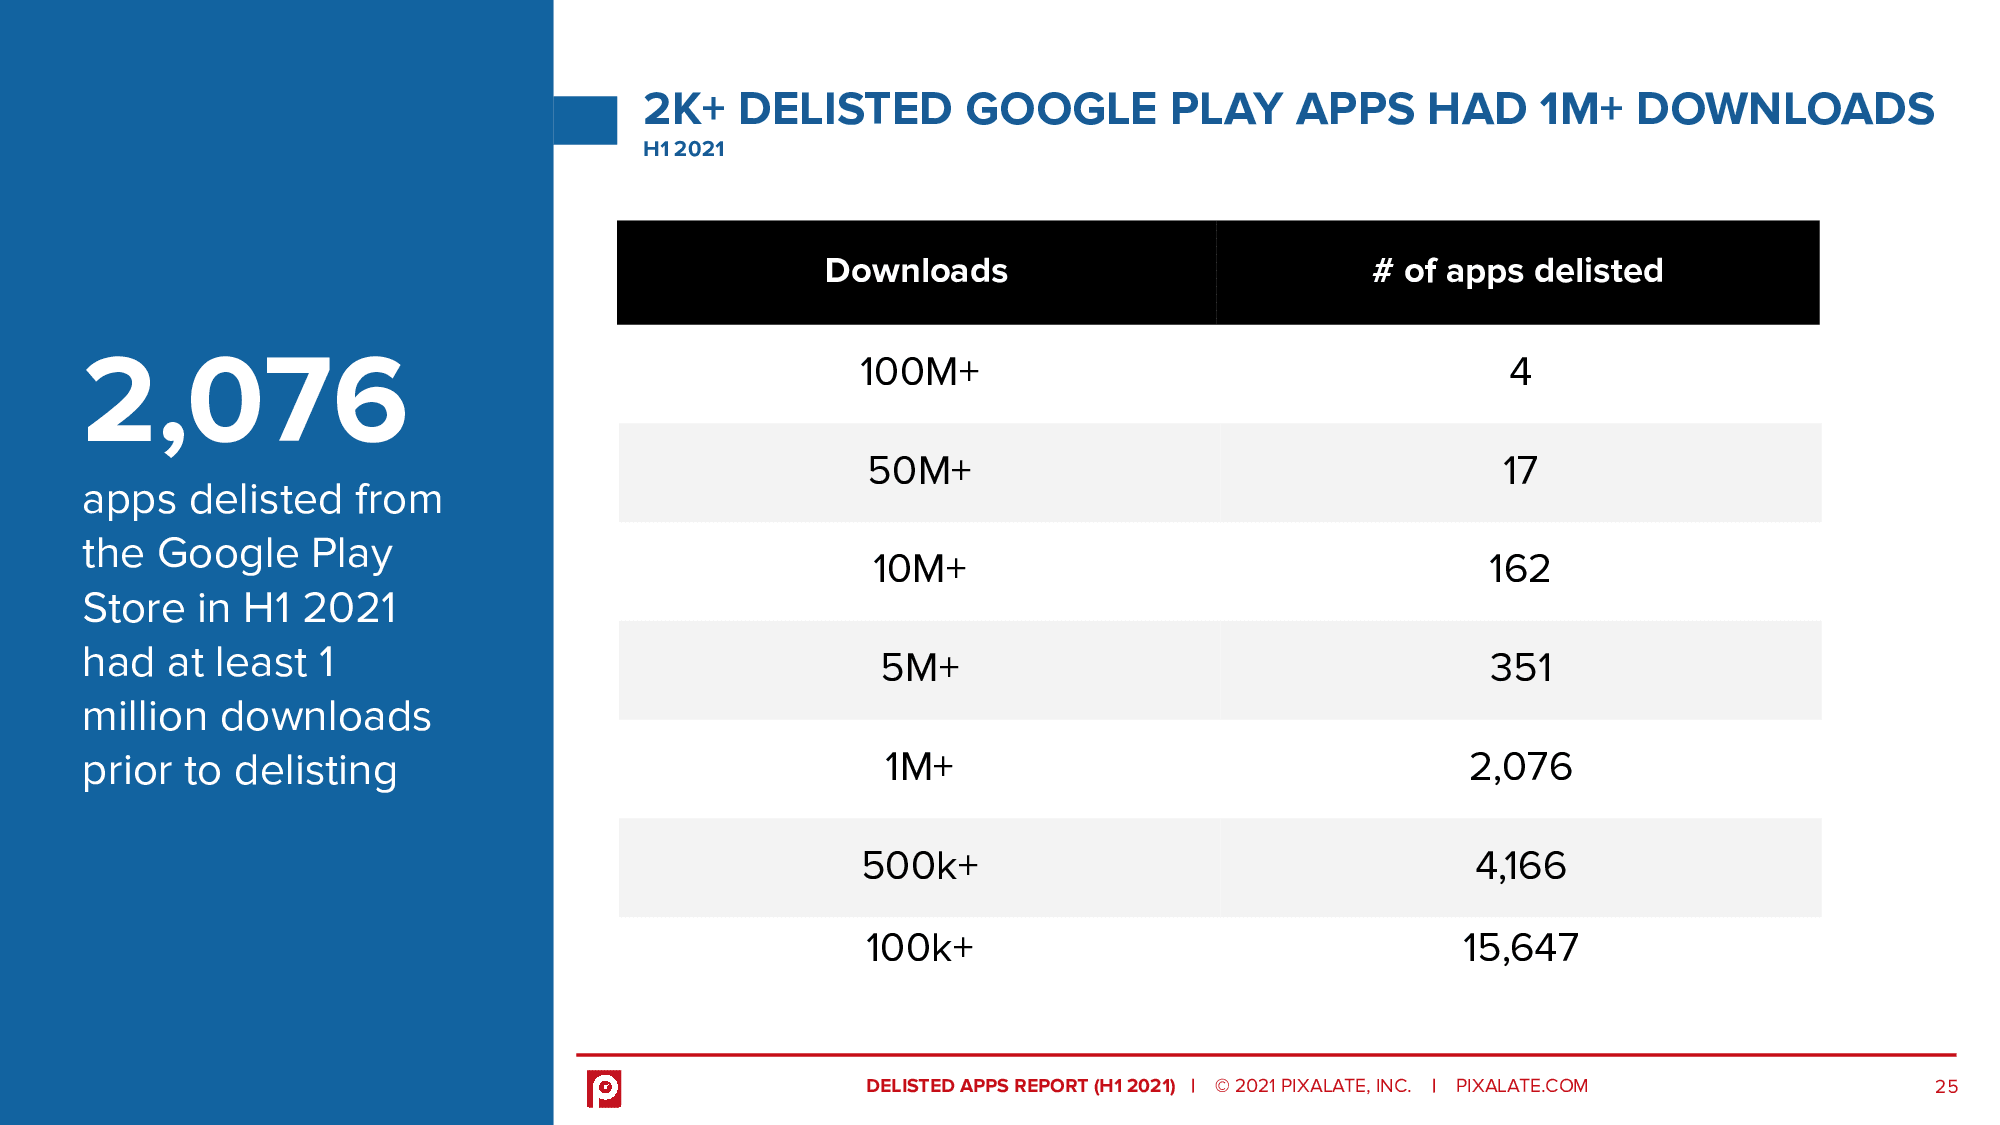 2,076 apps delisted from the Google Play Store in H1 2021 had at least 1 million downloads prior to delisting